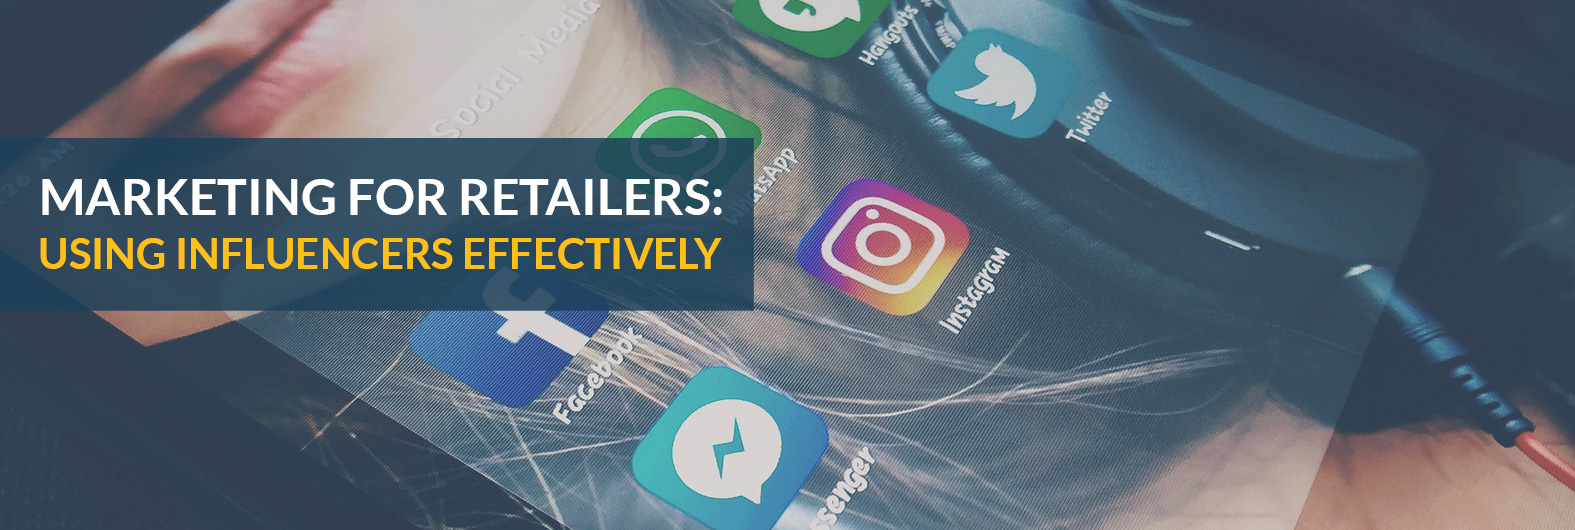 Marketing for Retailers:Using Influencers Effectively